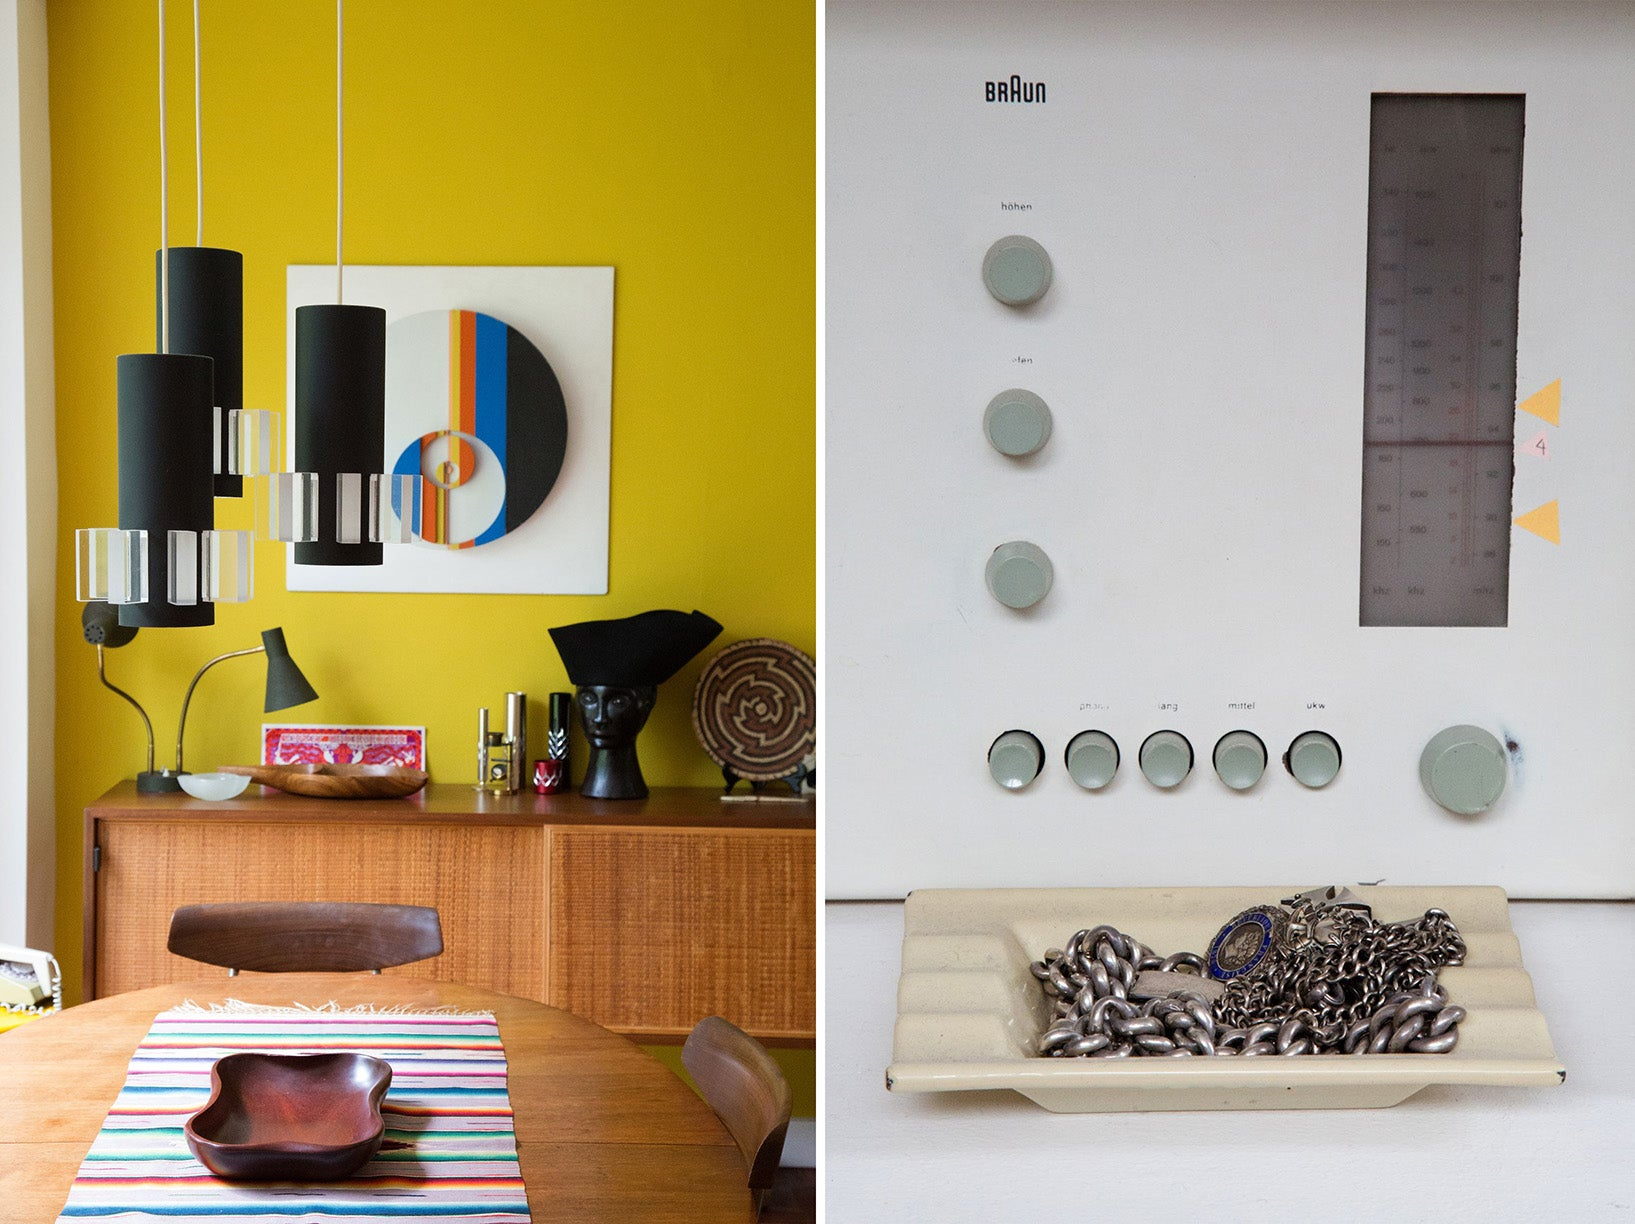 The interior of Simon Andrew's London home alongside his Braun Radio. Photos © Tom Harford Thompson